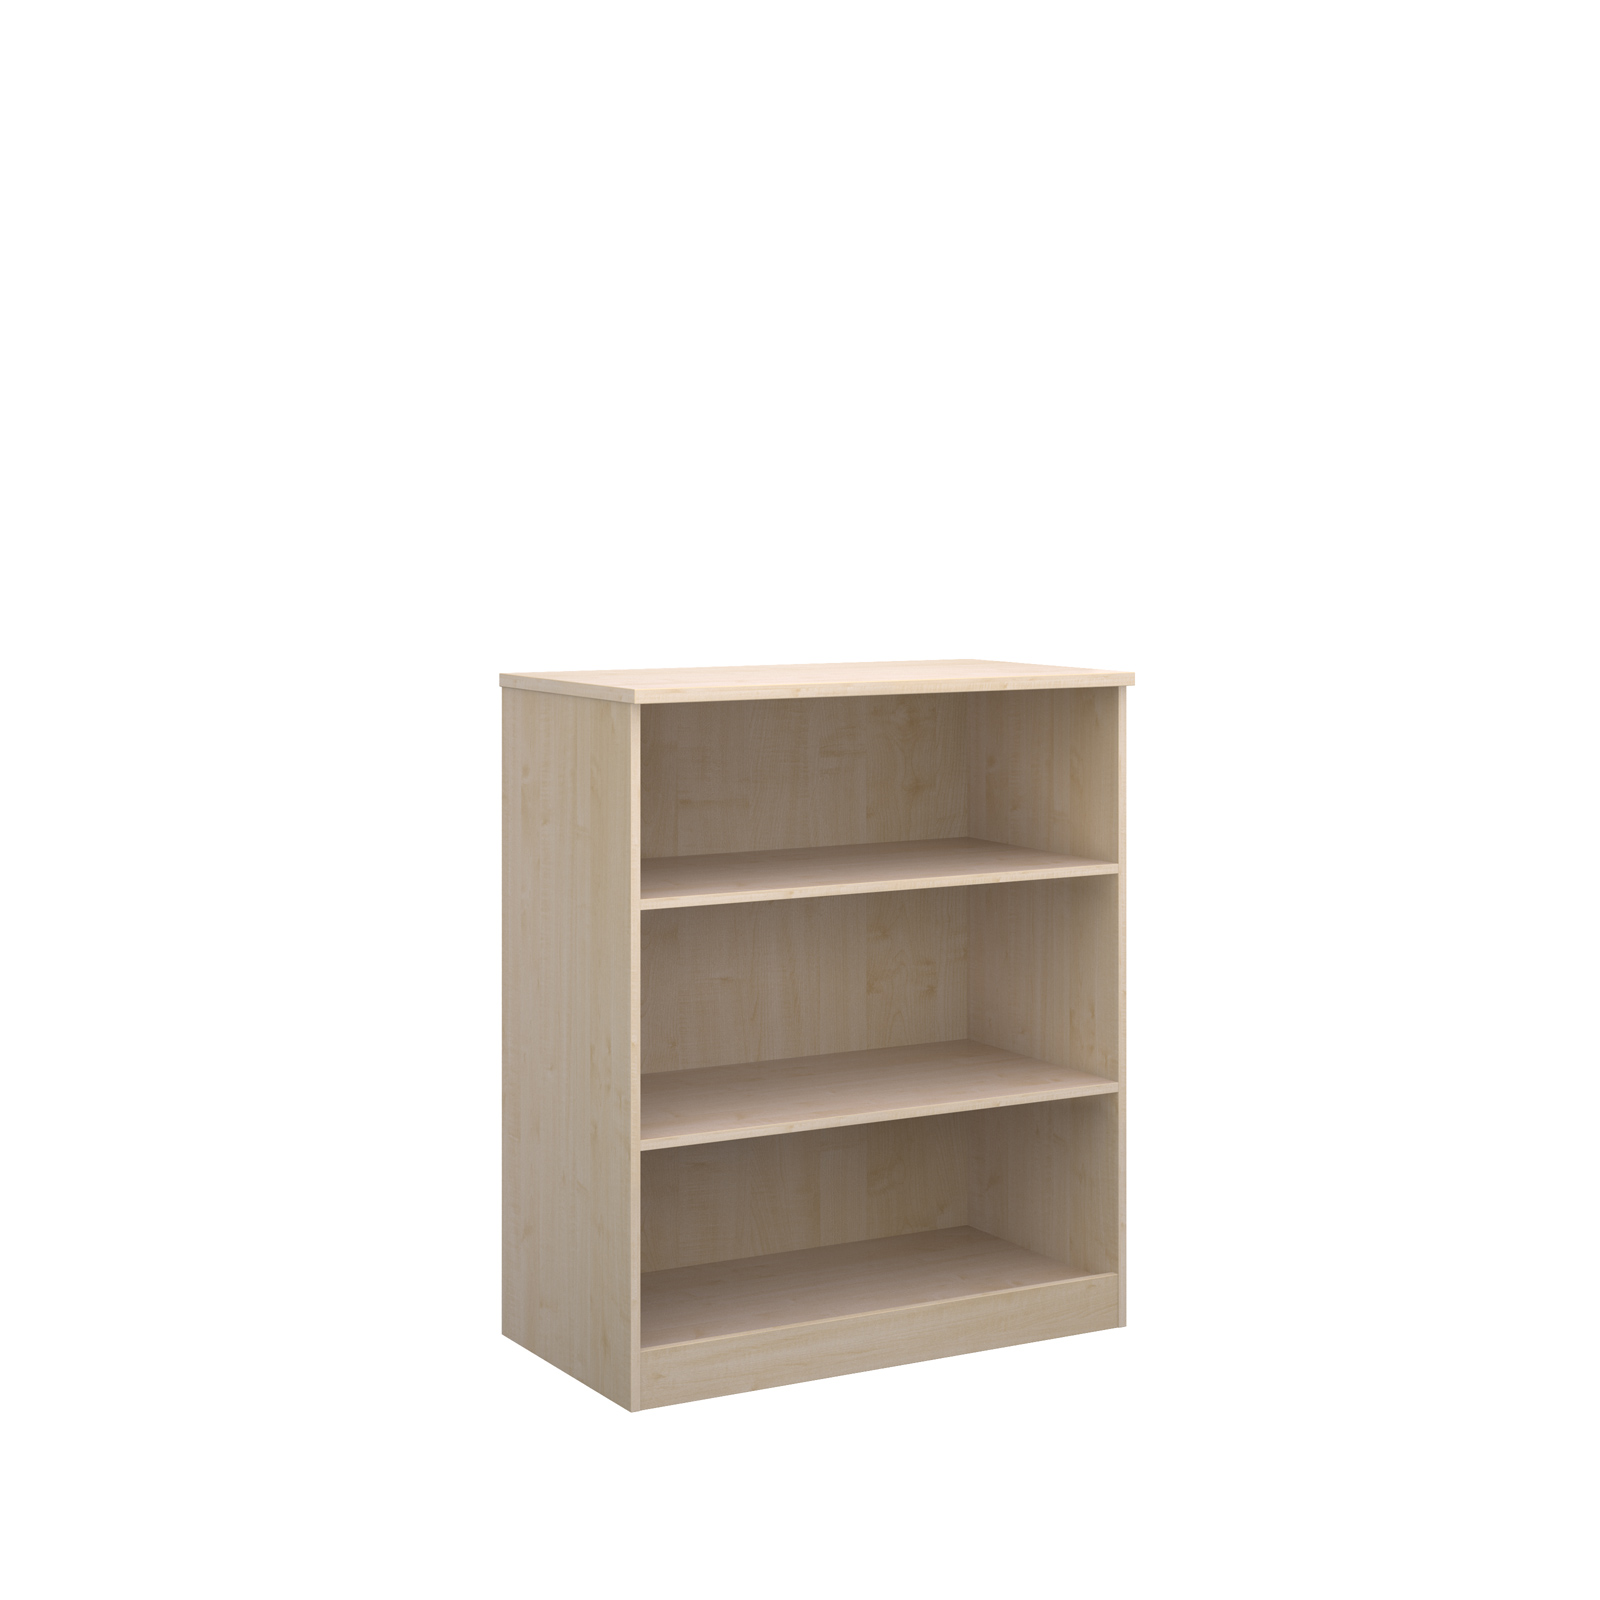 Deluxe bookcase 1200mm high with 2 shelves - maple